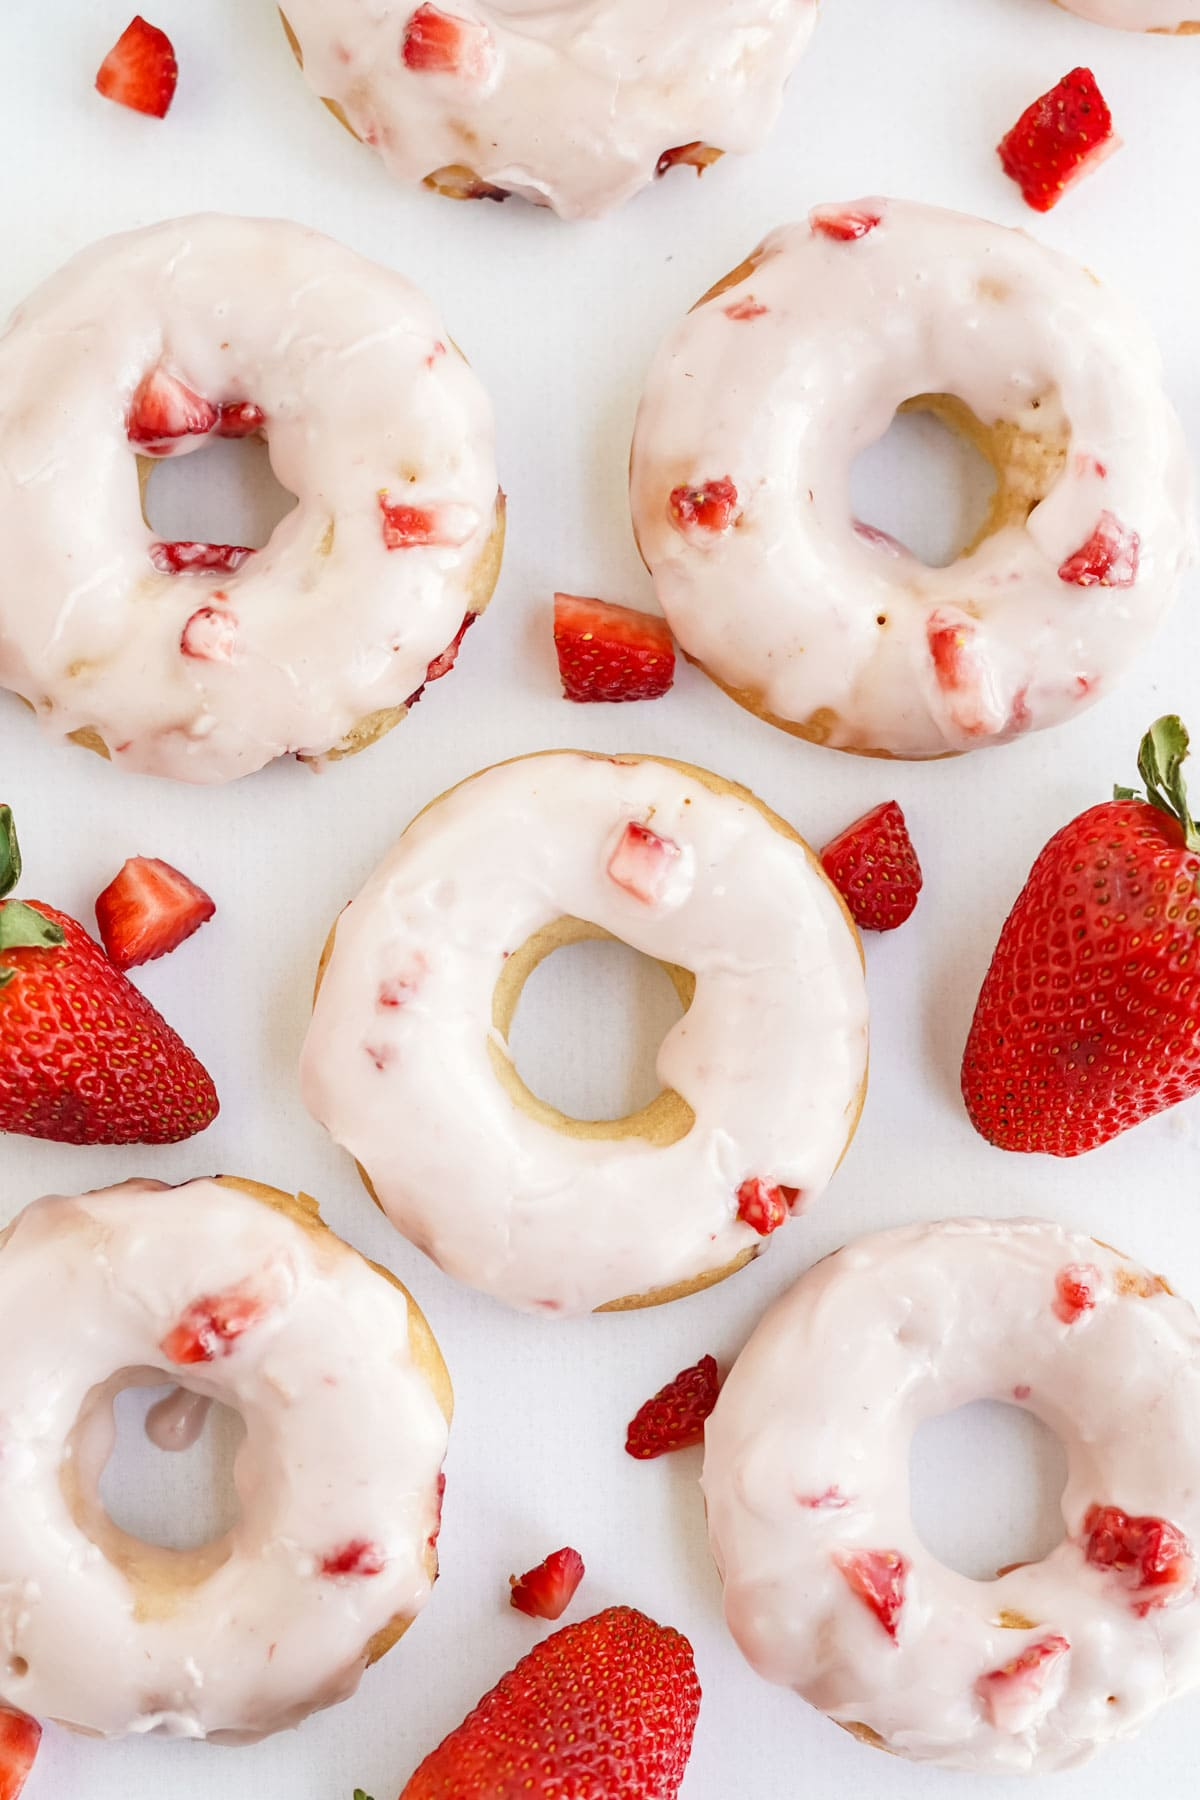 overhead image of strawberry doughnuts with glaze